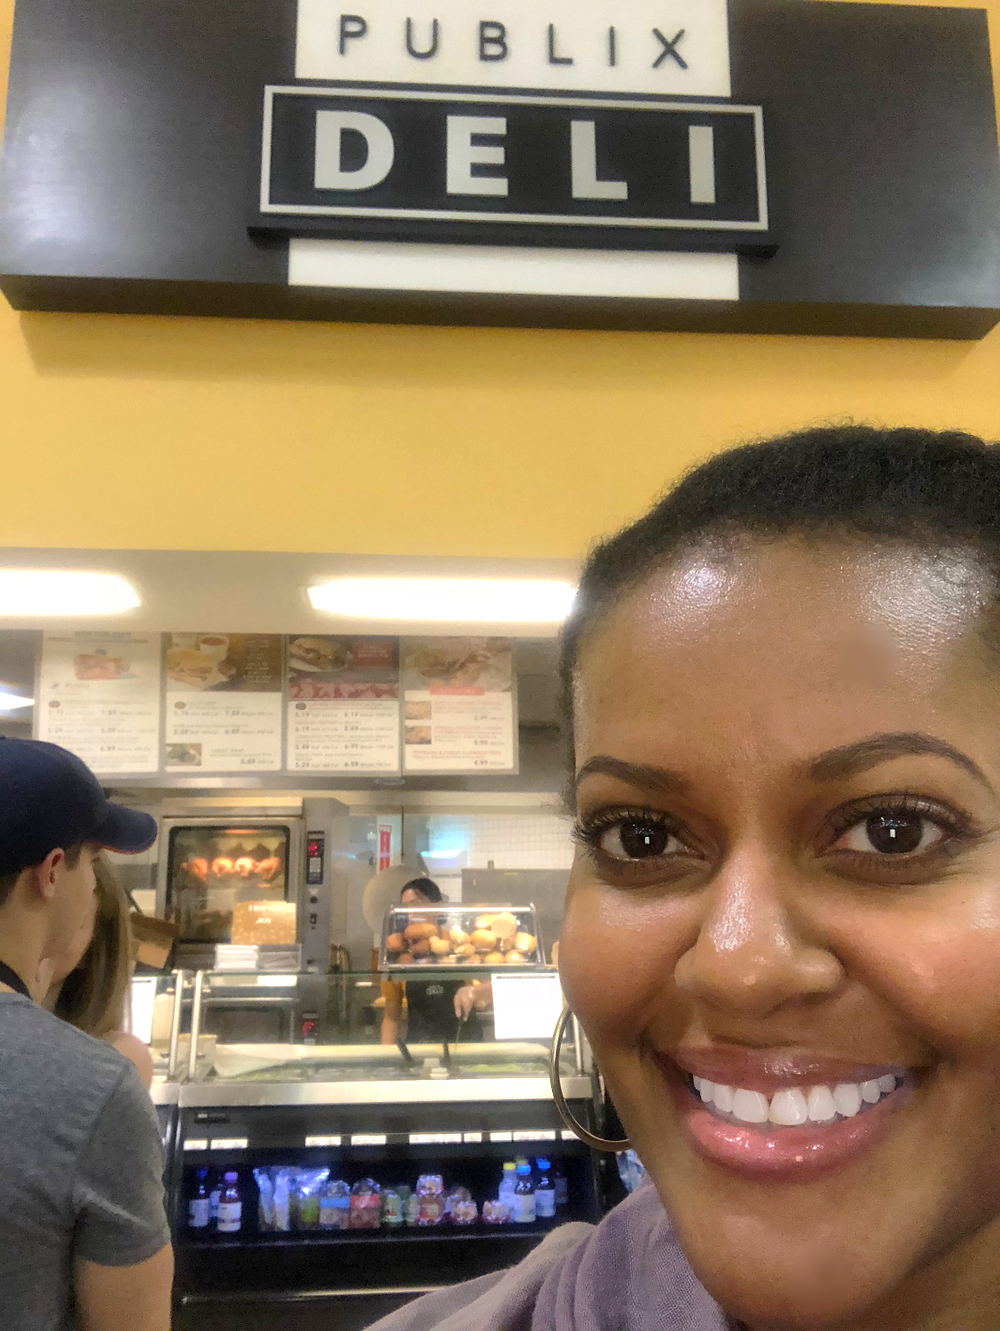 Pit stop at the Publix deli for a sub